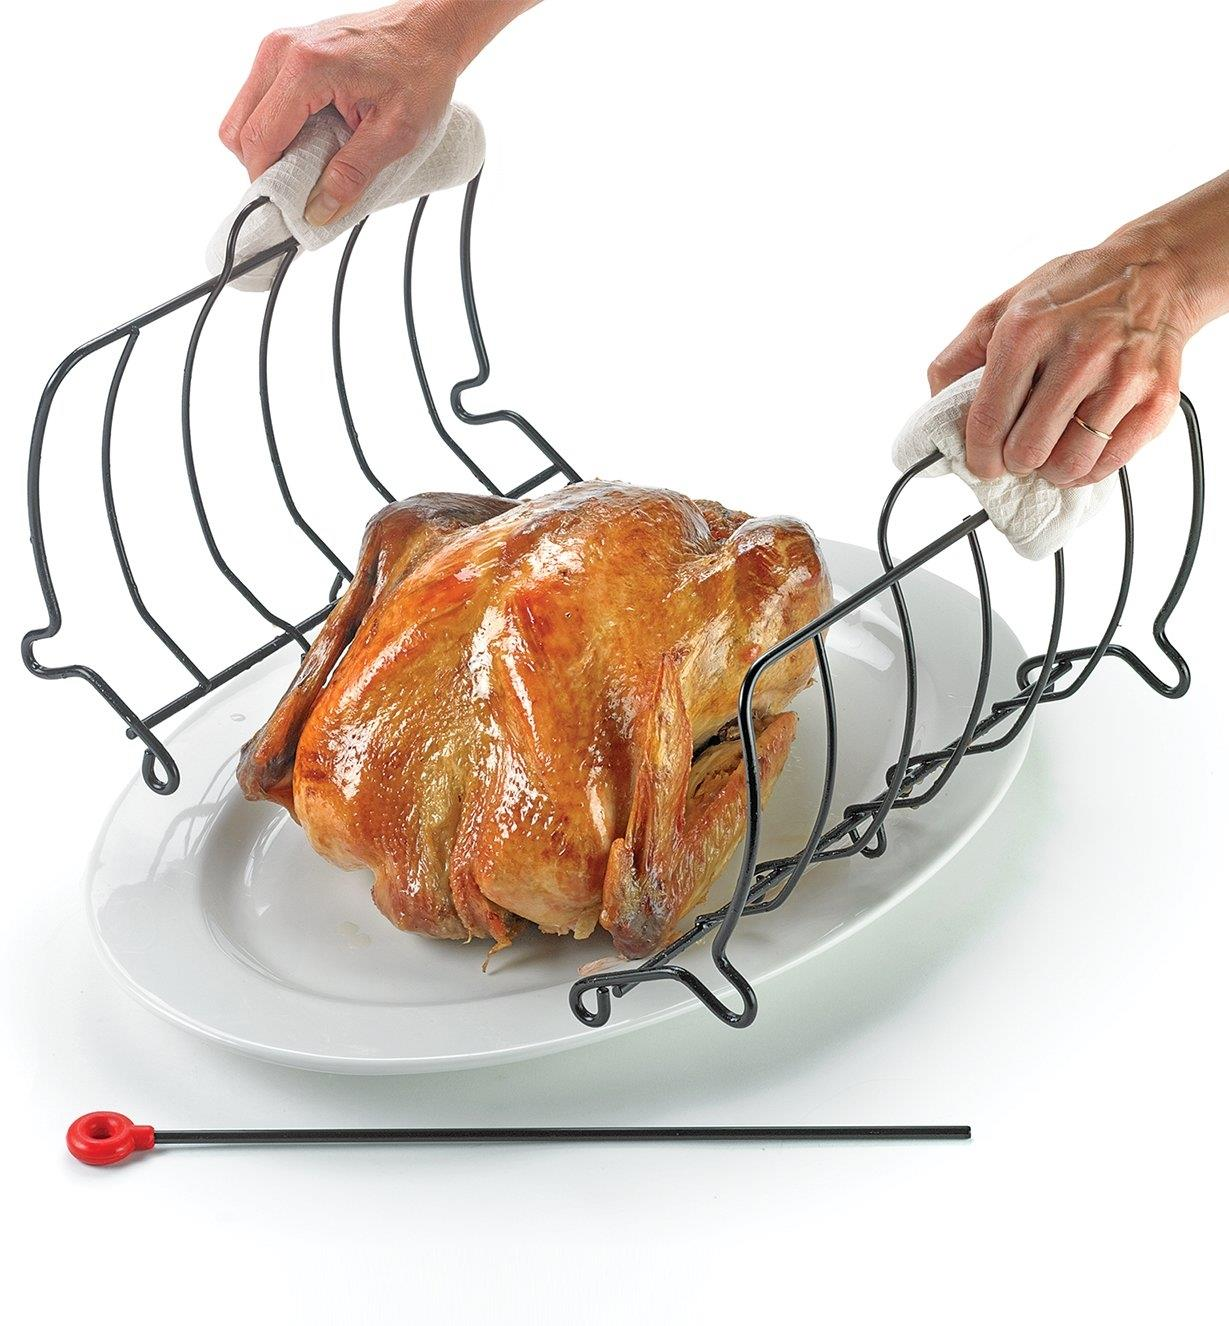 Sliding the two halves of the rack out from under the chicken on the platter